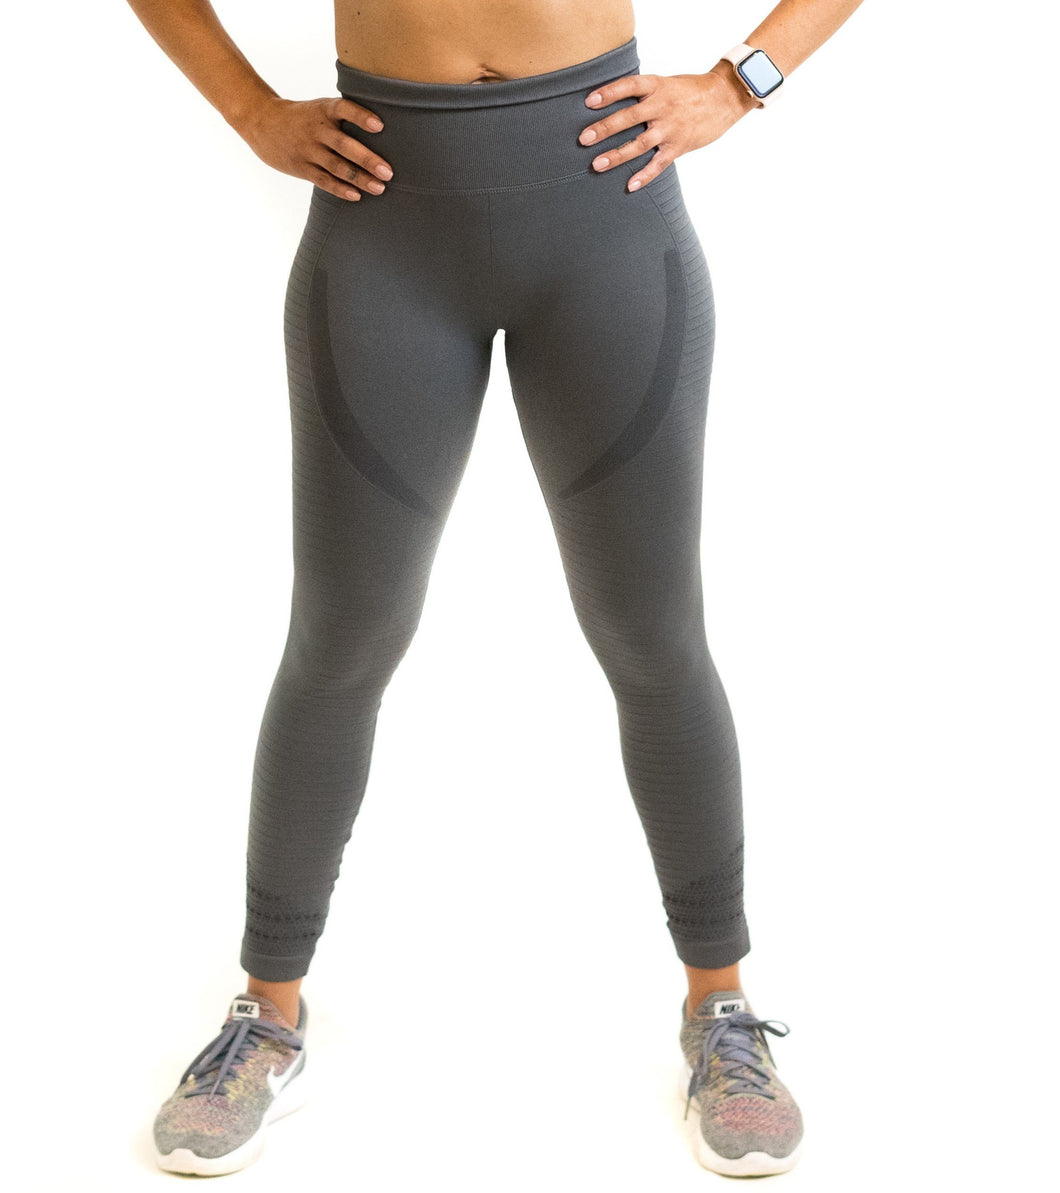 LELA FLEX SEAMLESS LEGGINGS